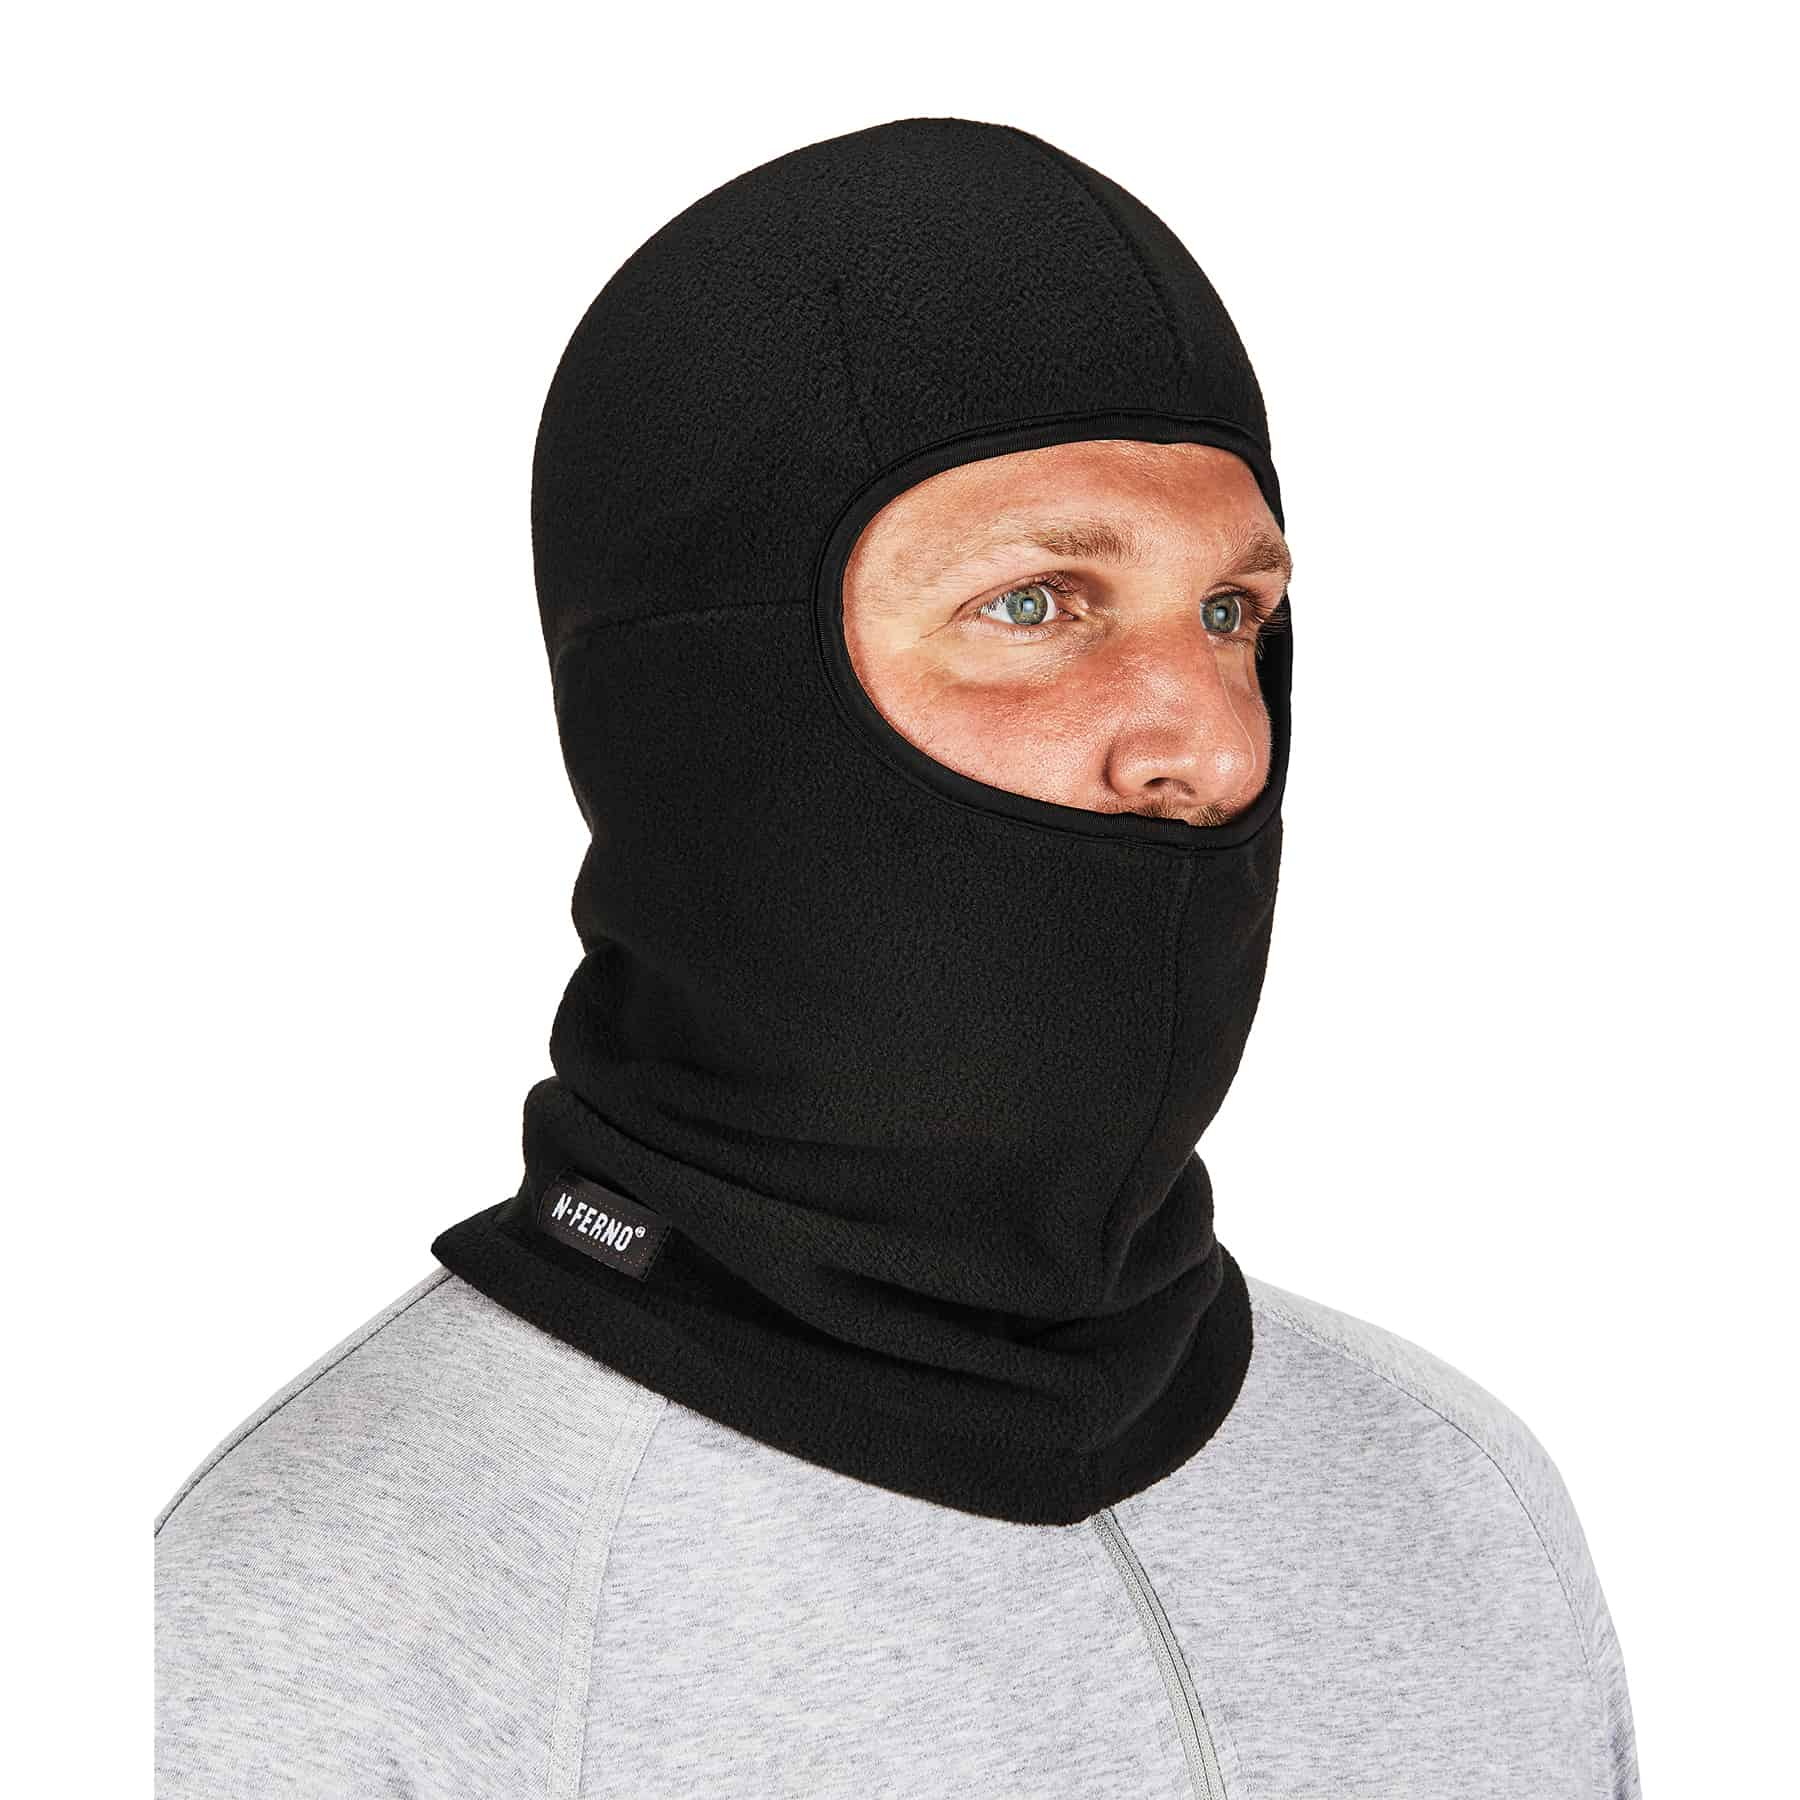 Reflective Safety High Visibility Balaclava Mask Hat Beanie Cap Zipper Neck Warm